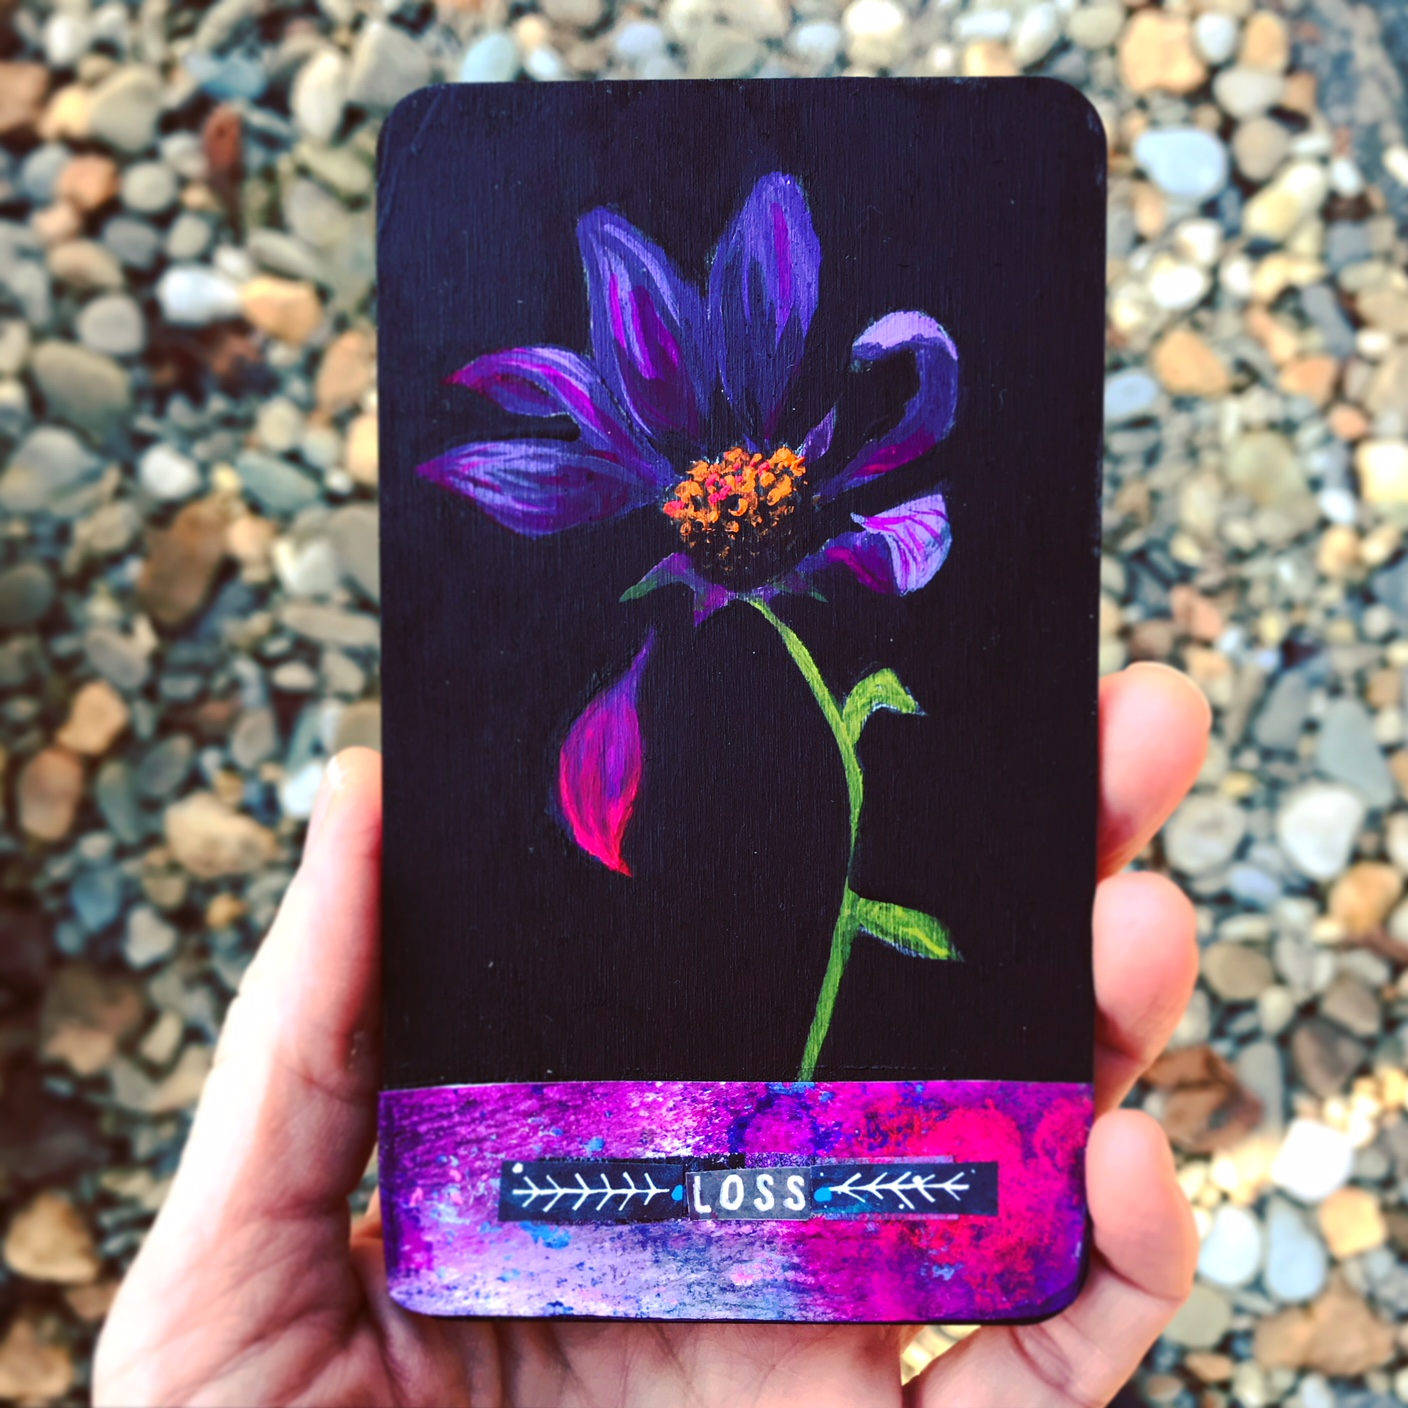 Loss - Hand Painted Wooden Oracle Card